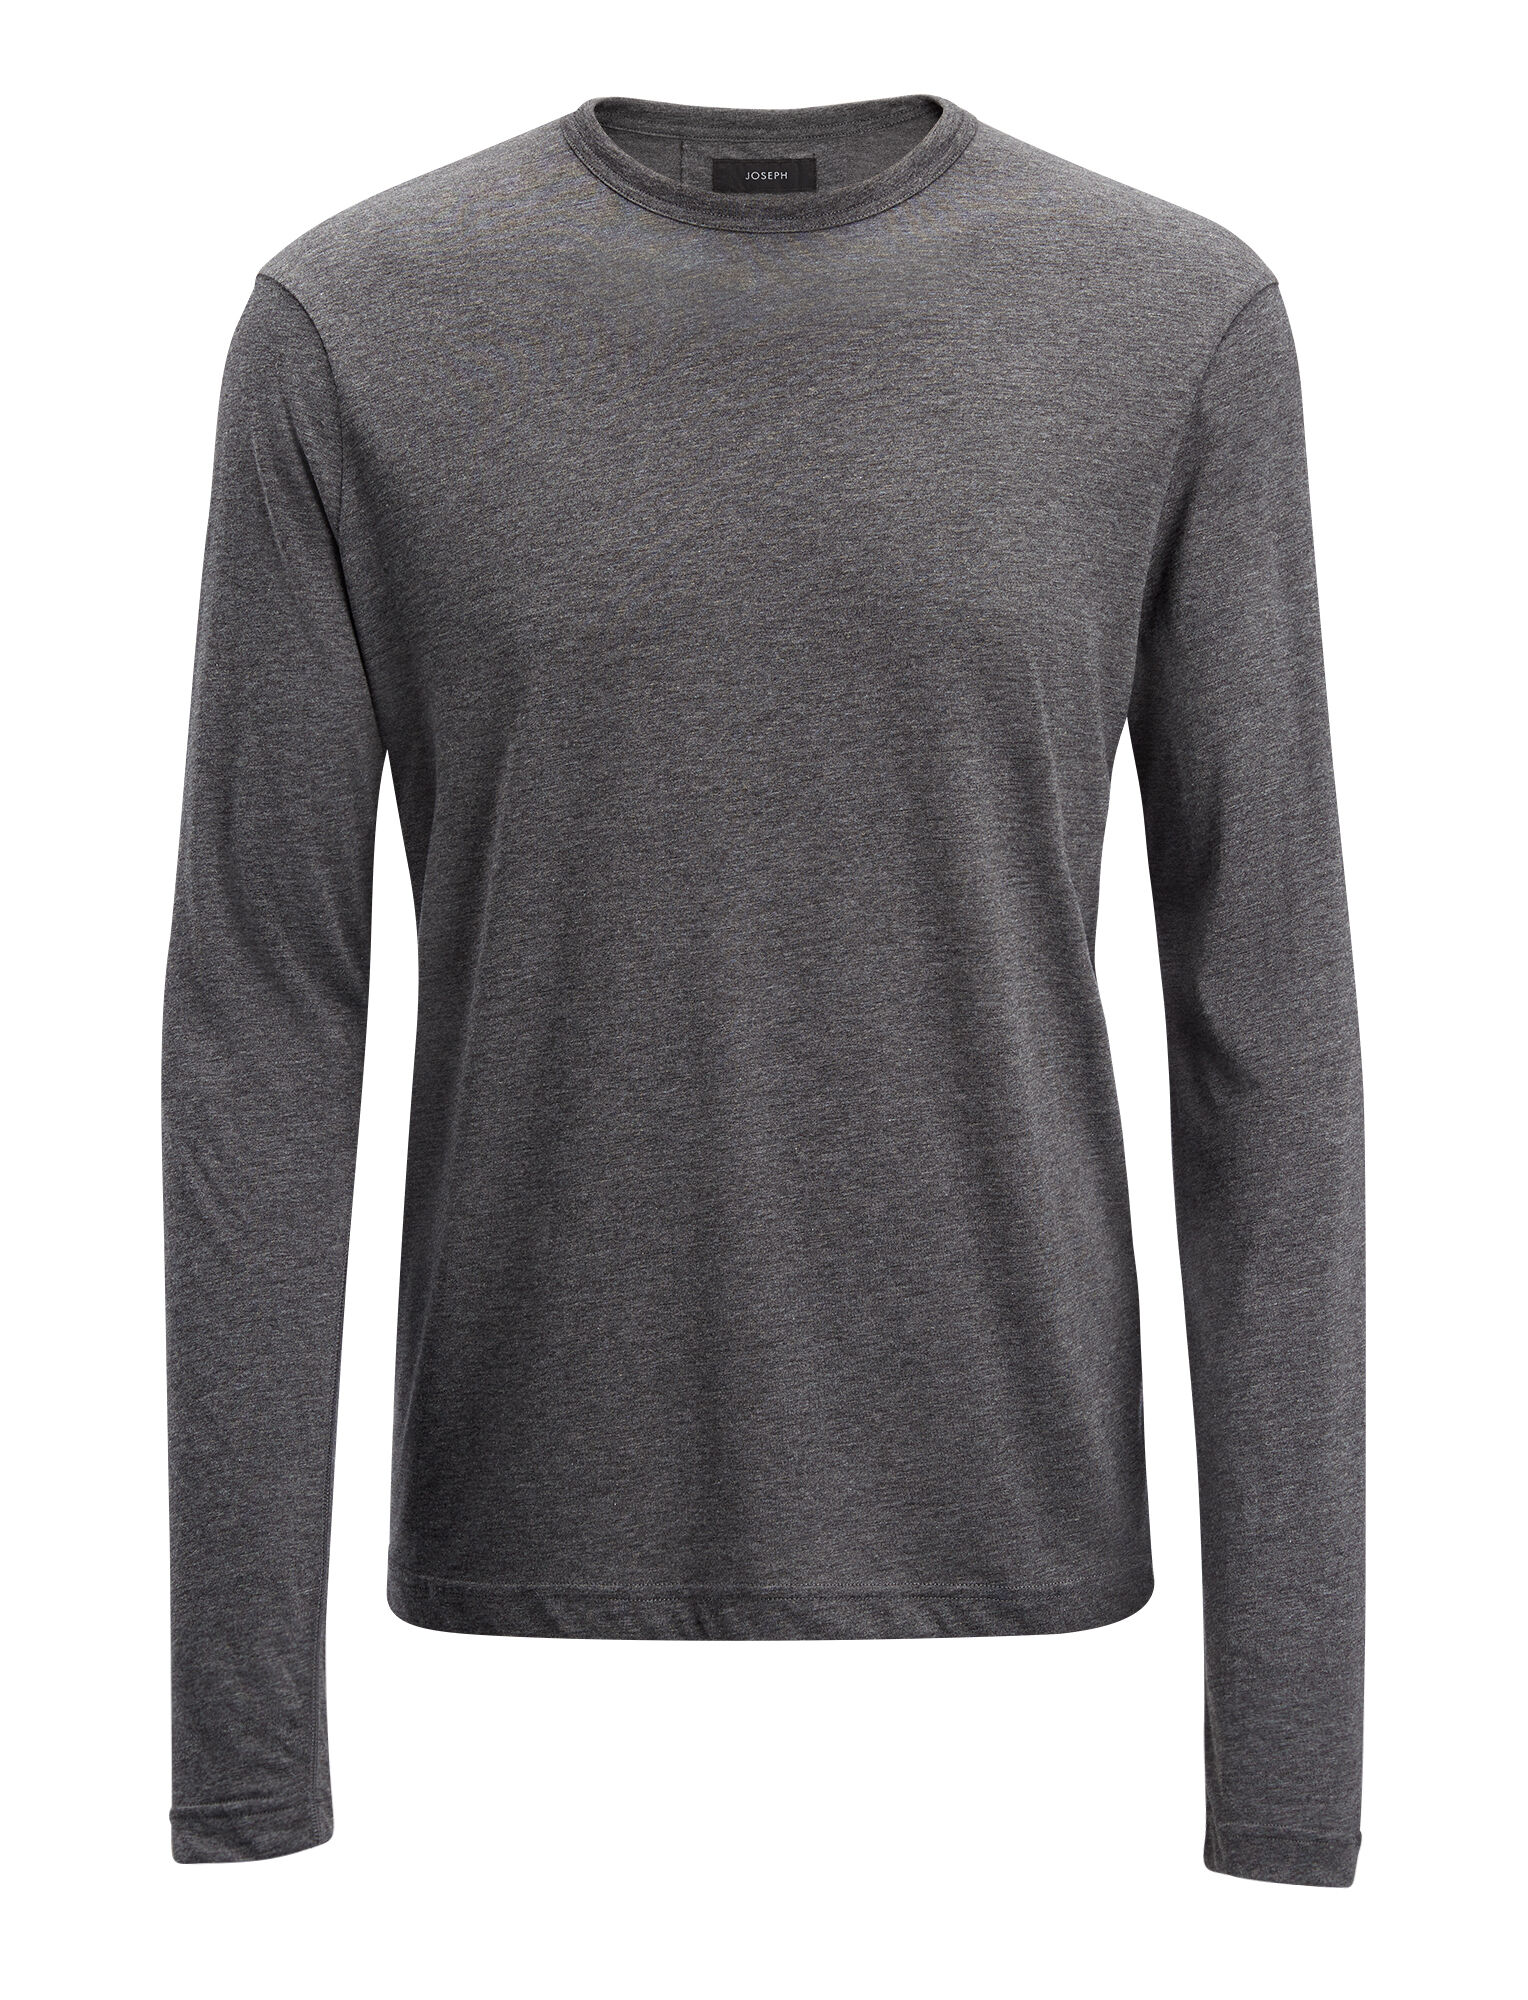 Joseph, Lyocell Jersey Top, in GRAPHITE